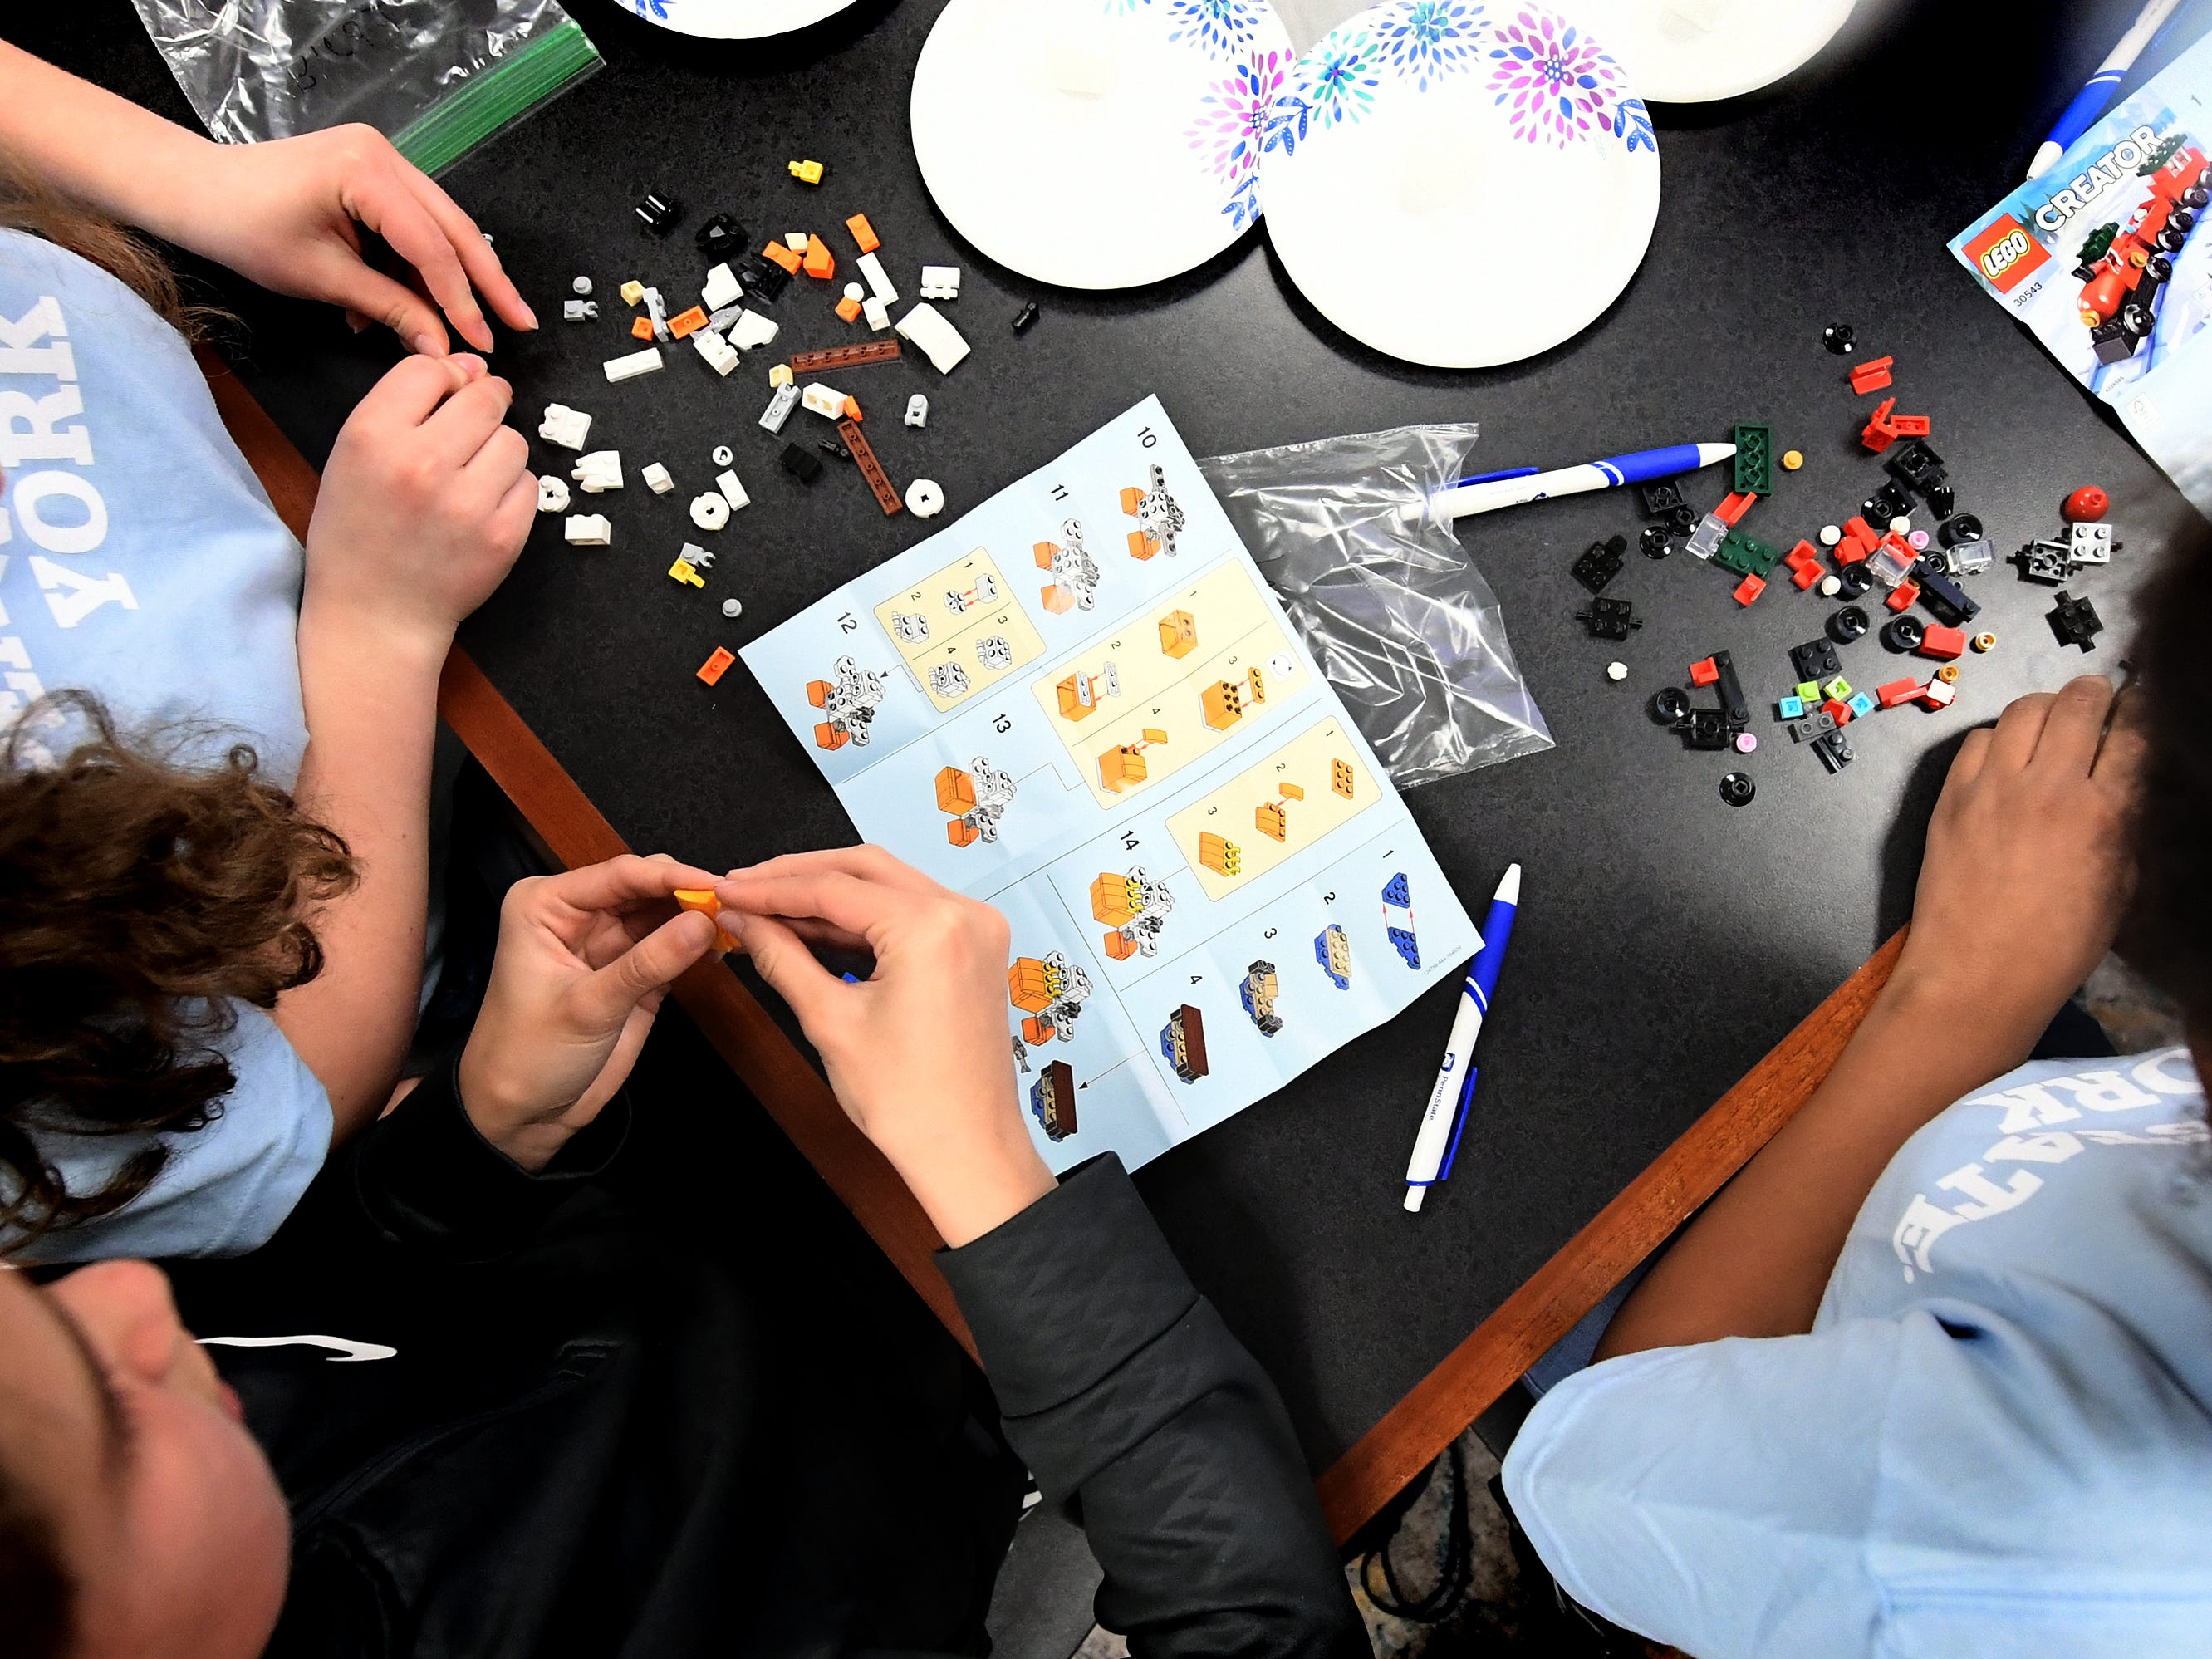 South Eastern Middle School students work on a puzzle during Marshmallow Minds, a social science workshop at the Pathways to Your Future: Exploring STEAM Careers event at Penn State York Friday, May 10, 2019. Over 200 seventh-grade girls from 28 area schools participated in the program which highlighted science, technology, engineering, art, and mathematics (STEAM) careers. Industry leaders administered the workshops during the program, which is in its 23rd year. Bill Kalina photo